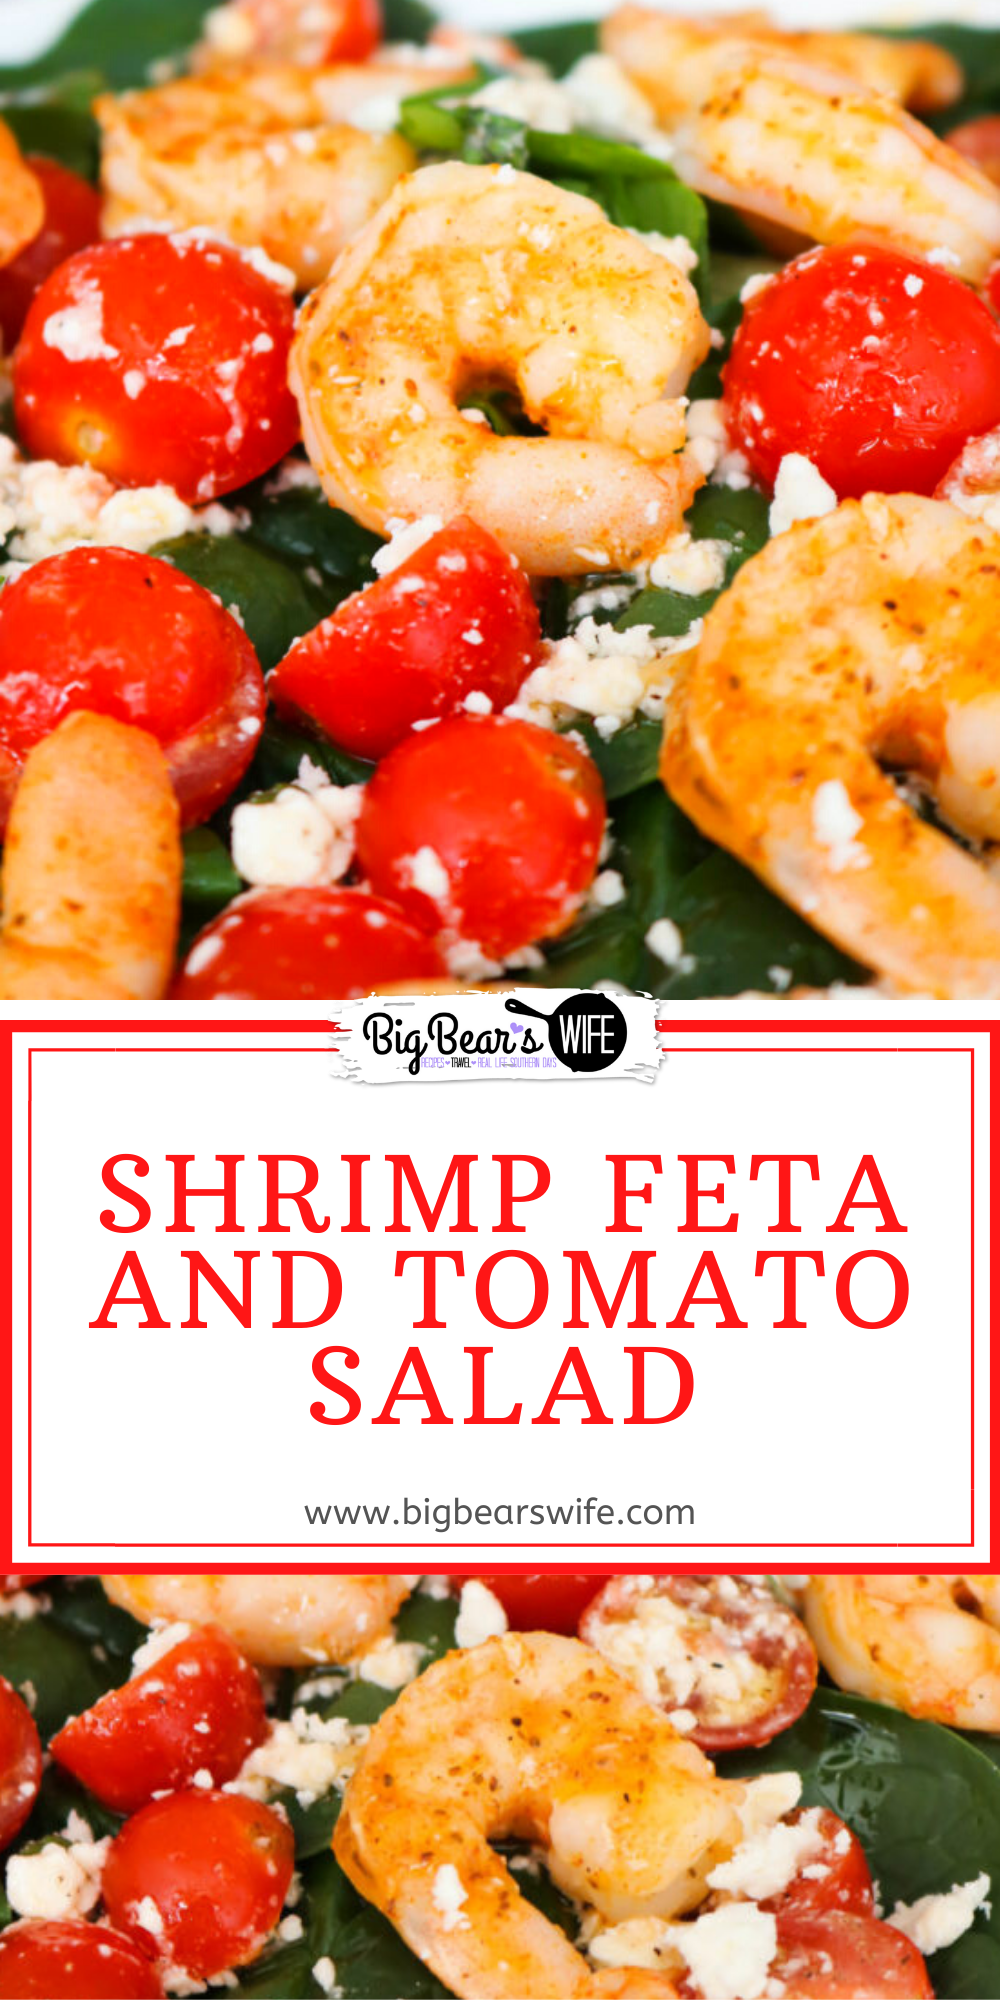 Salads don't have to be boring nor do they needs to be loaded down with tons of fatty dressings to be tasty! This Shrimp Feta and Tomato Salad is full of seasoned shrimp, feta cheese, fresh tomatoes and dressed with a wonderful light dressing! via @bigbearswife